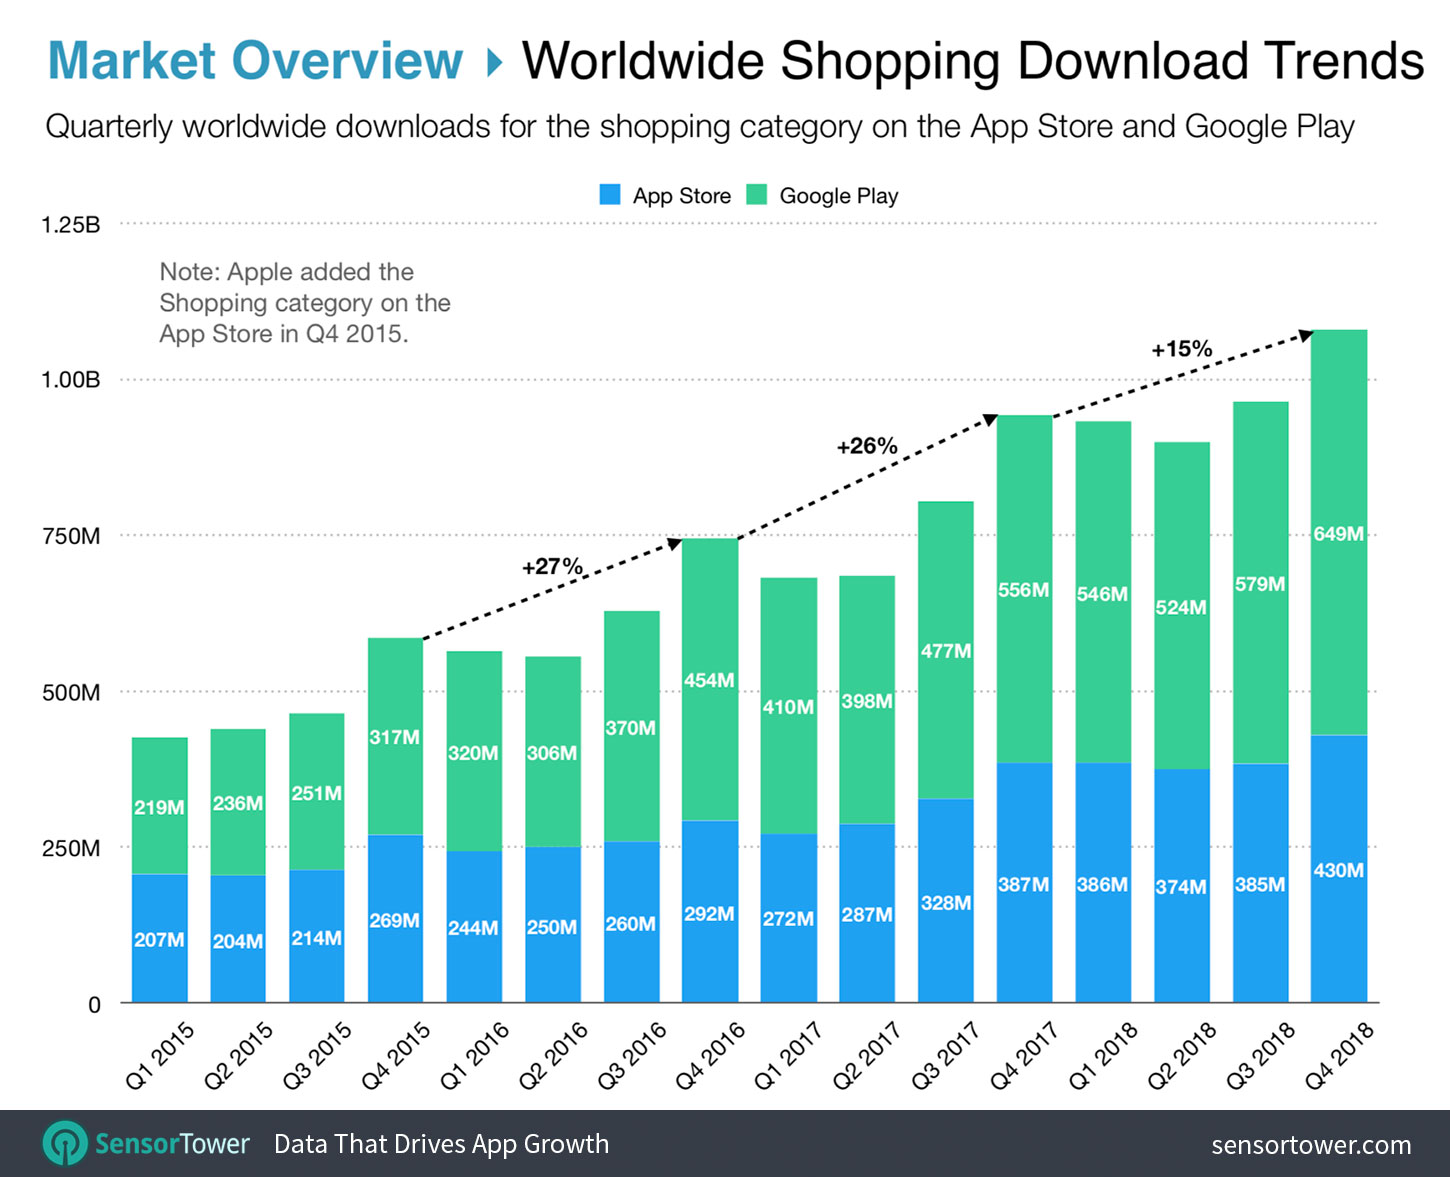 Top Shopping Apps Rankings and Download Trends Worldwide